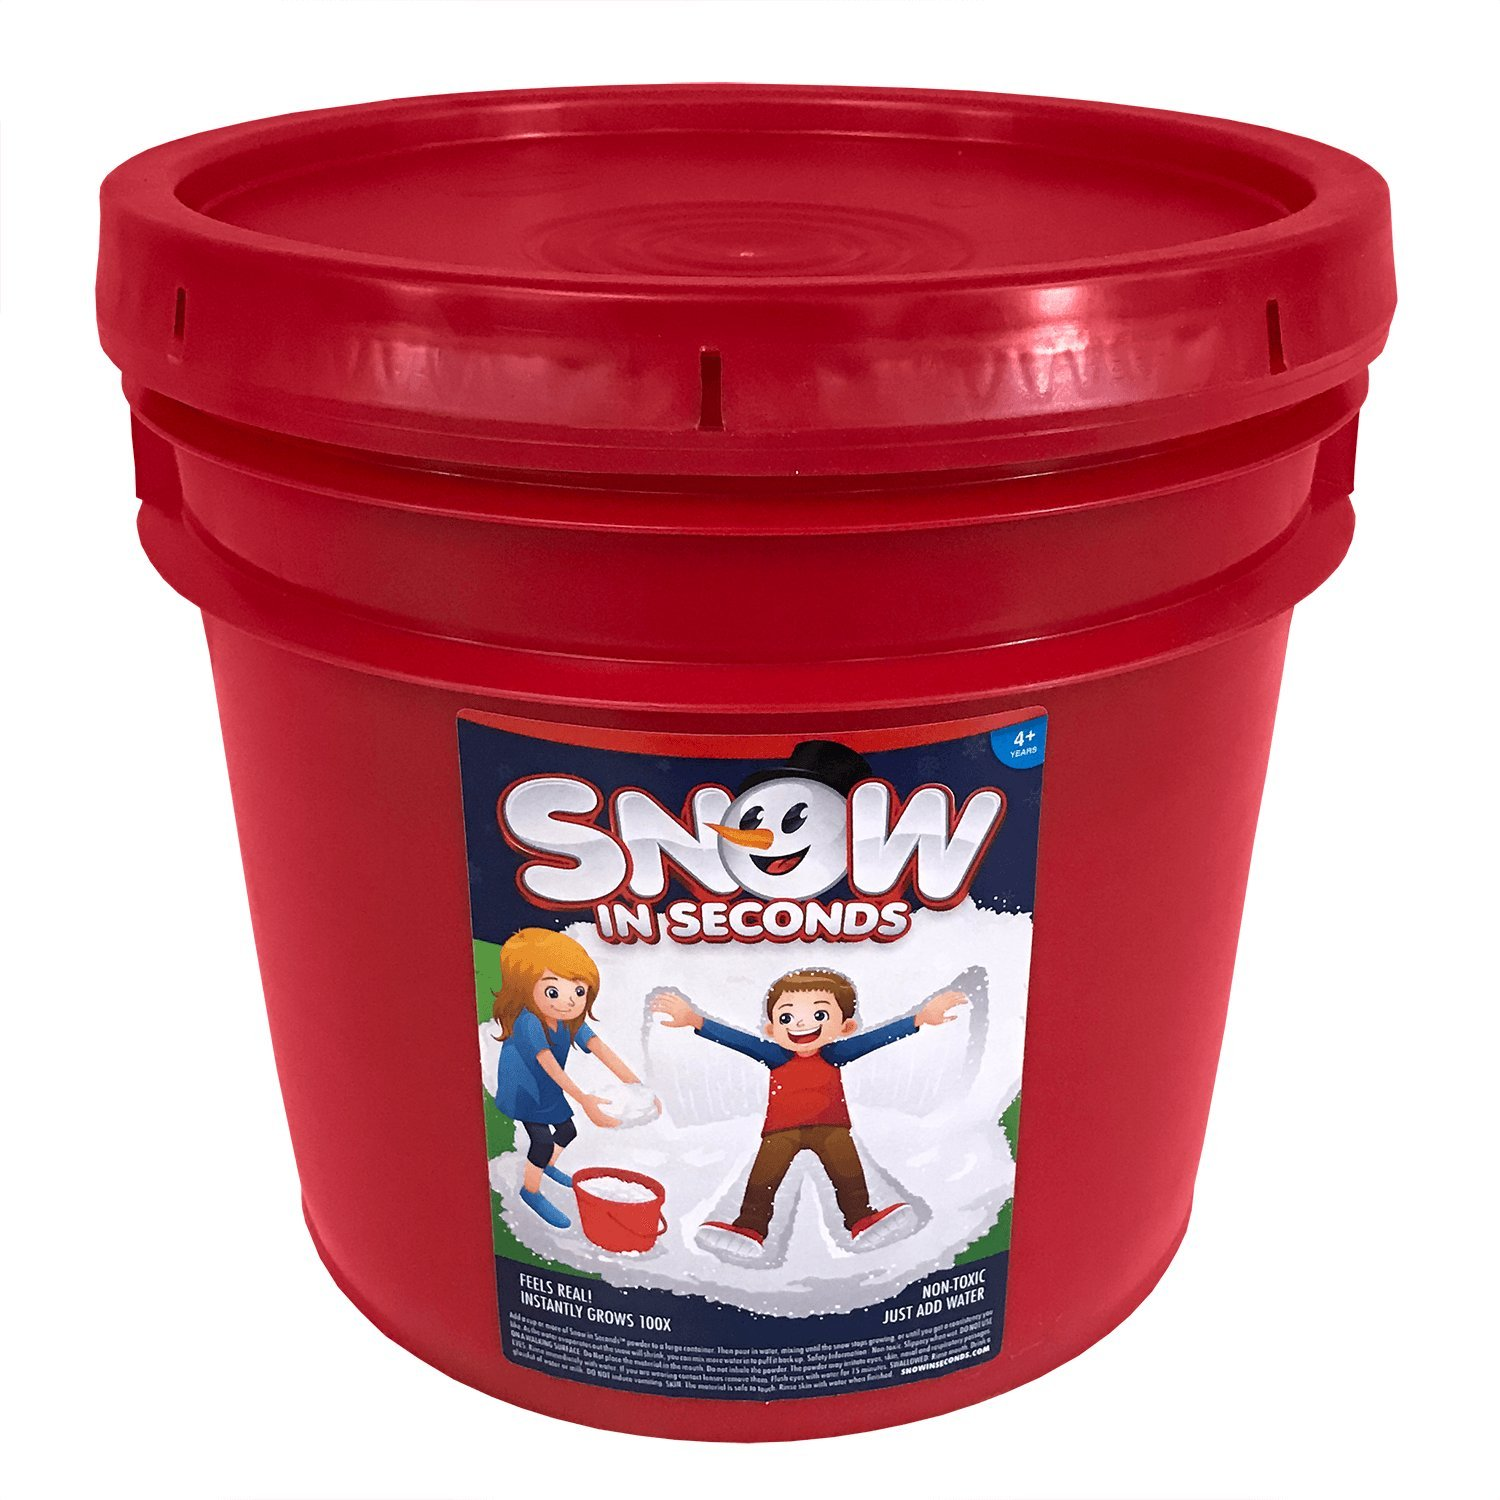 Snow in Seconds Instant Fake Snow XL Party Bucket (Makes 130 Gallons) by Snow in Seconds (Image #1)